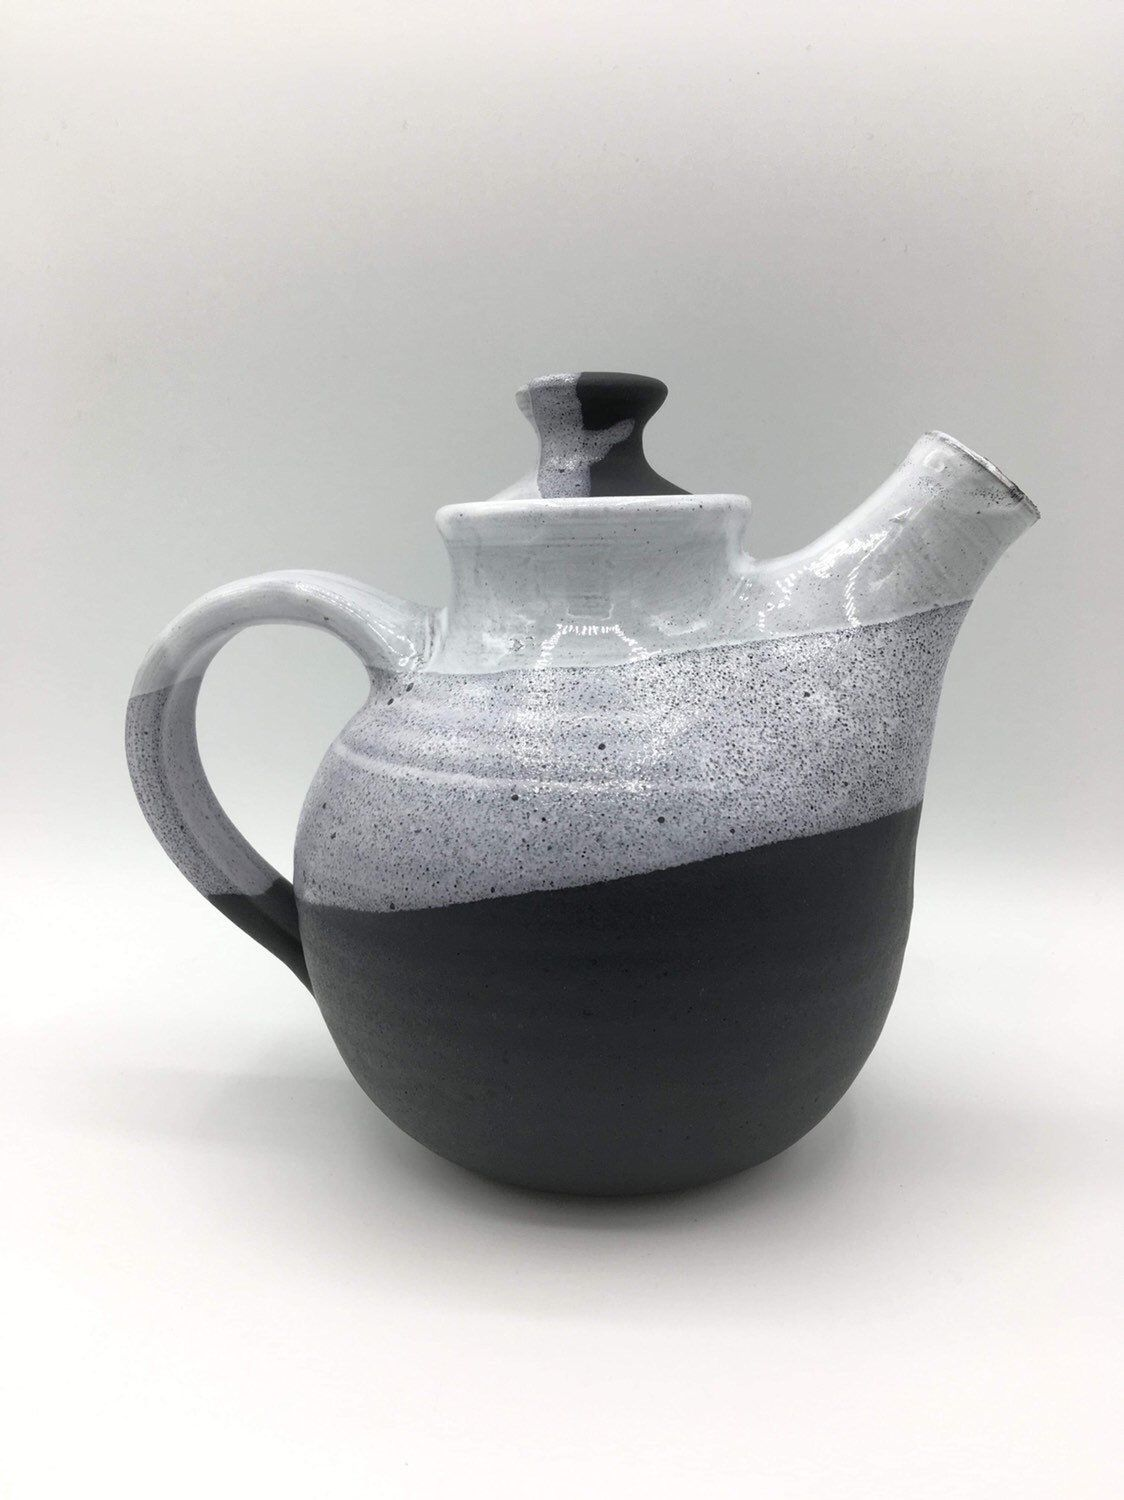 Excited To Share This Item From My Etsy Shop Ceramic Teapot Handmade Pottery Black And White Housewares Ceramic Tea Set Ceramic Teapots Handmade Teapot